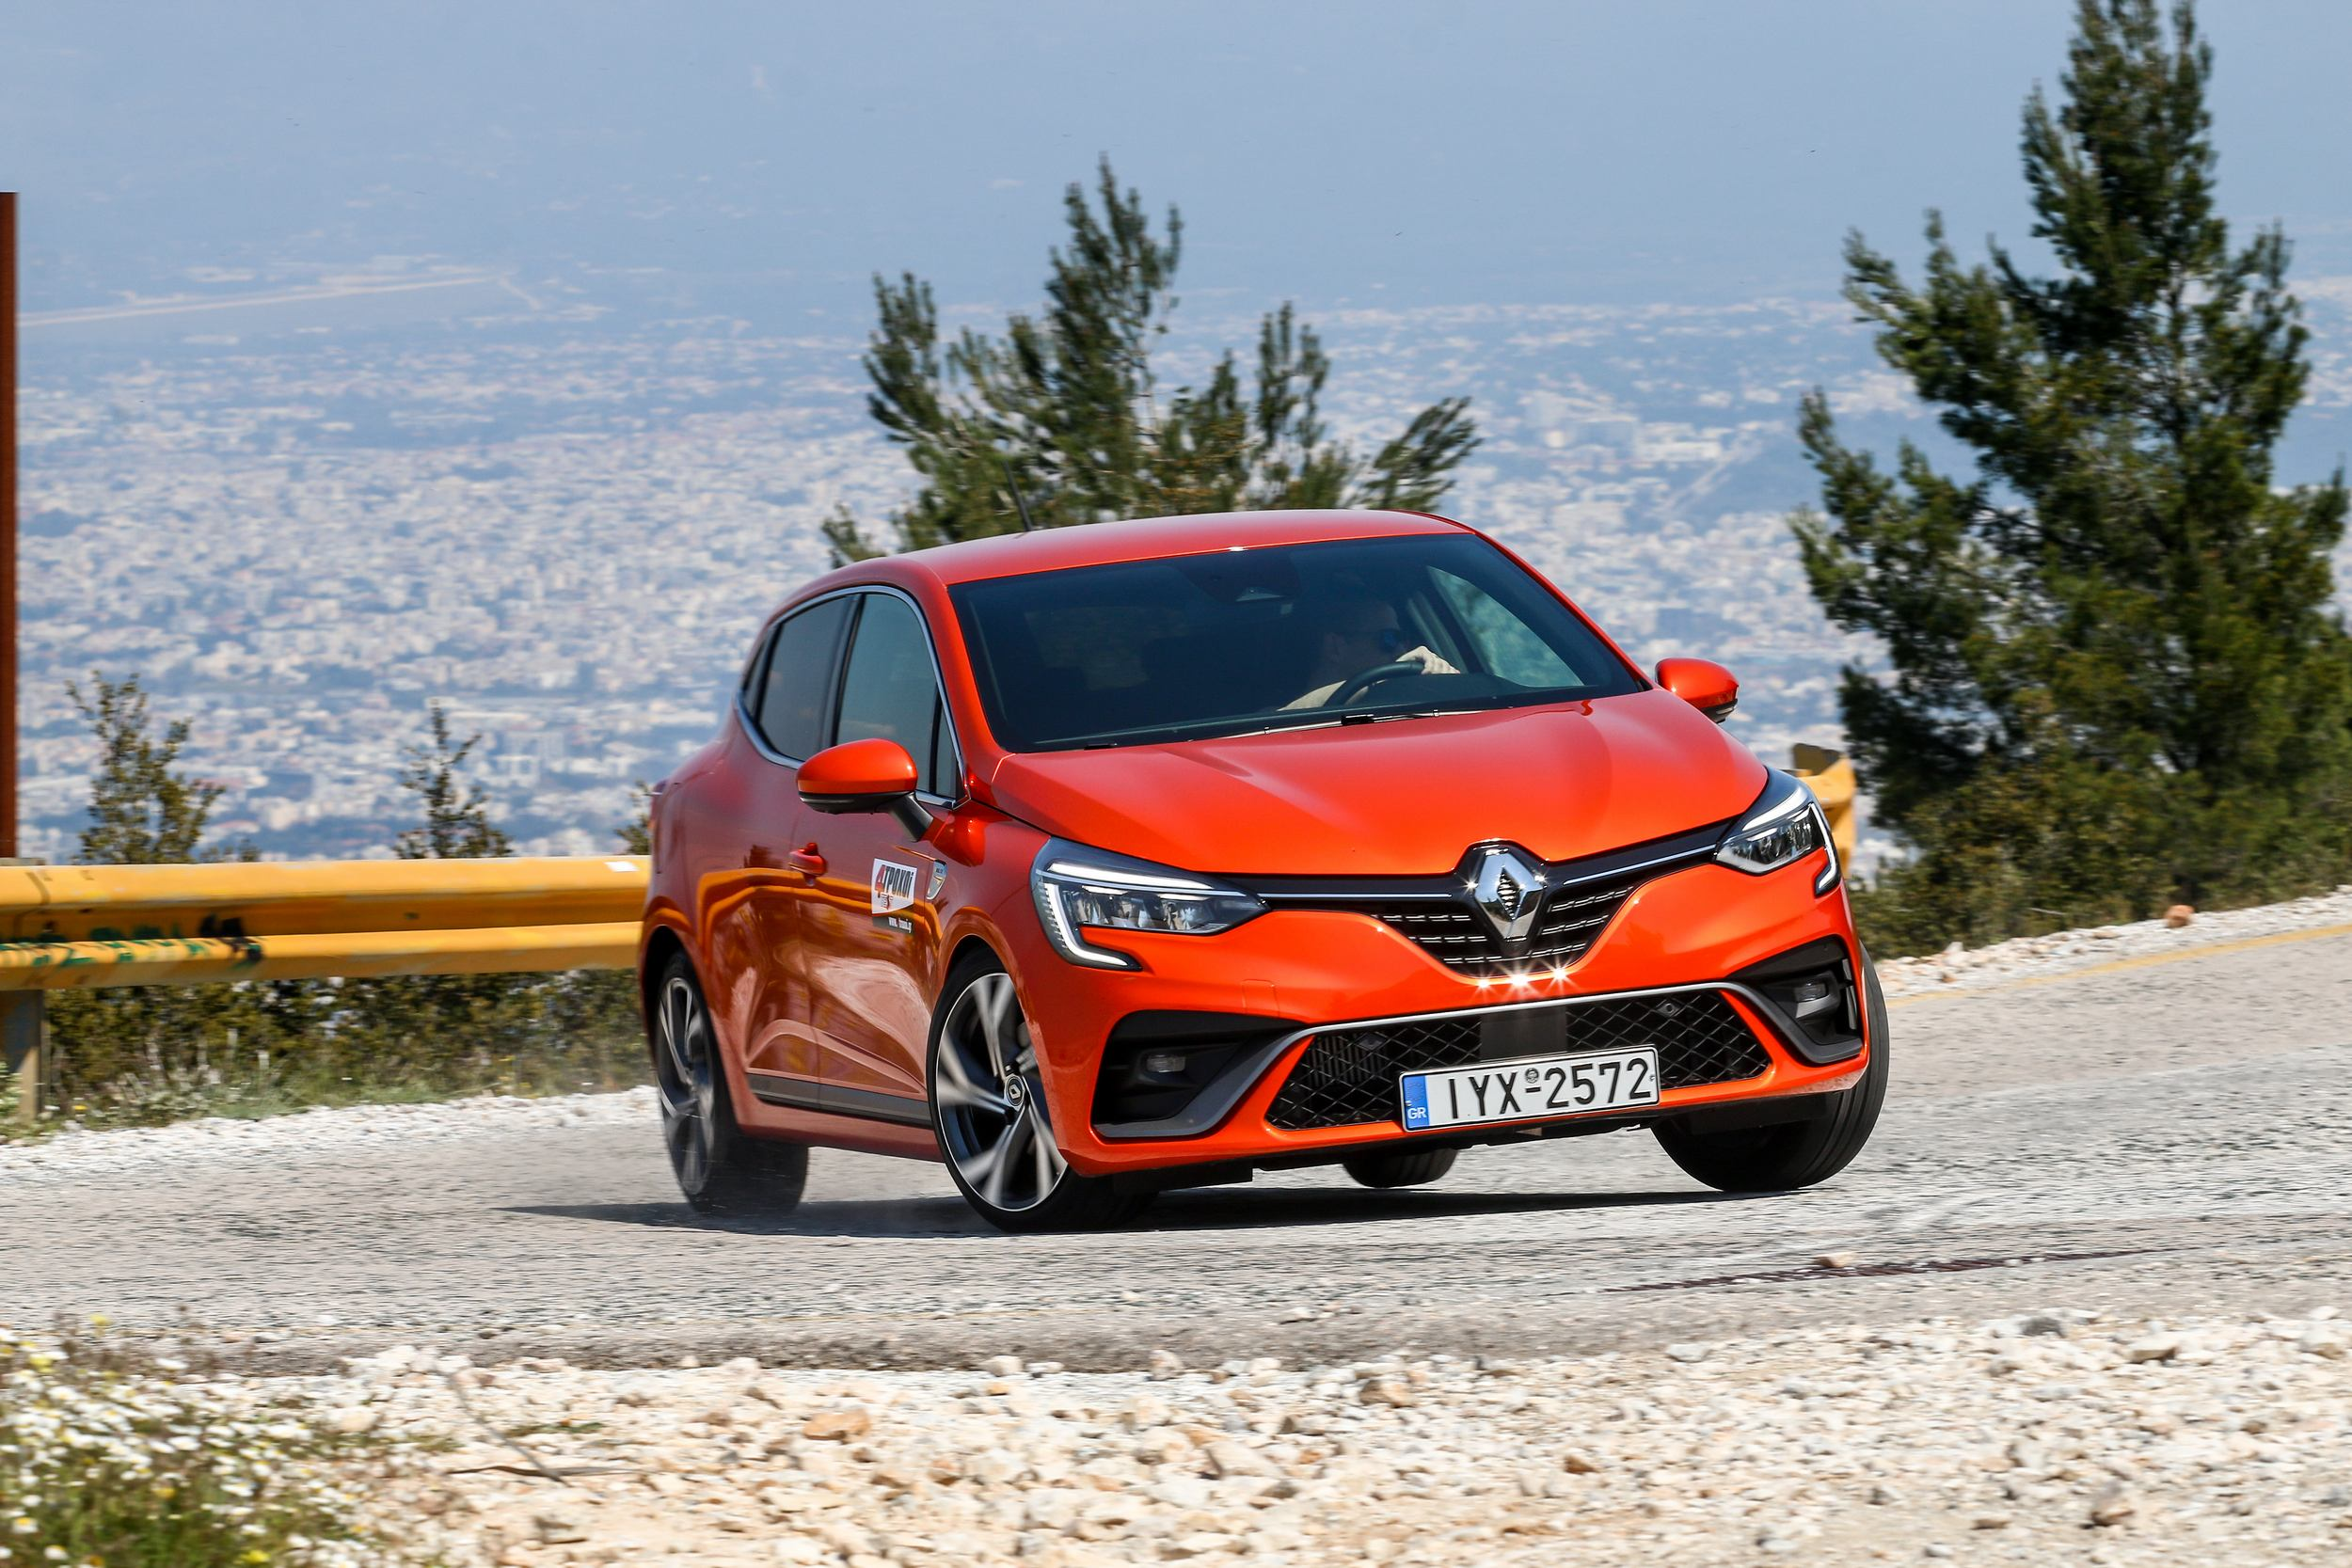 Renault Clio 1.3 TCe 130 PS R.S. Line